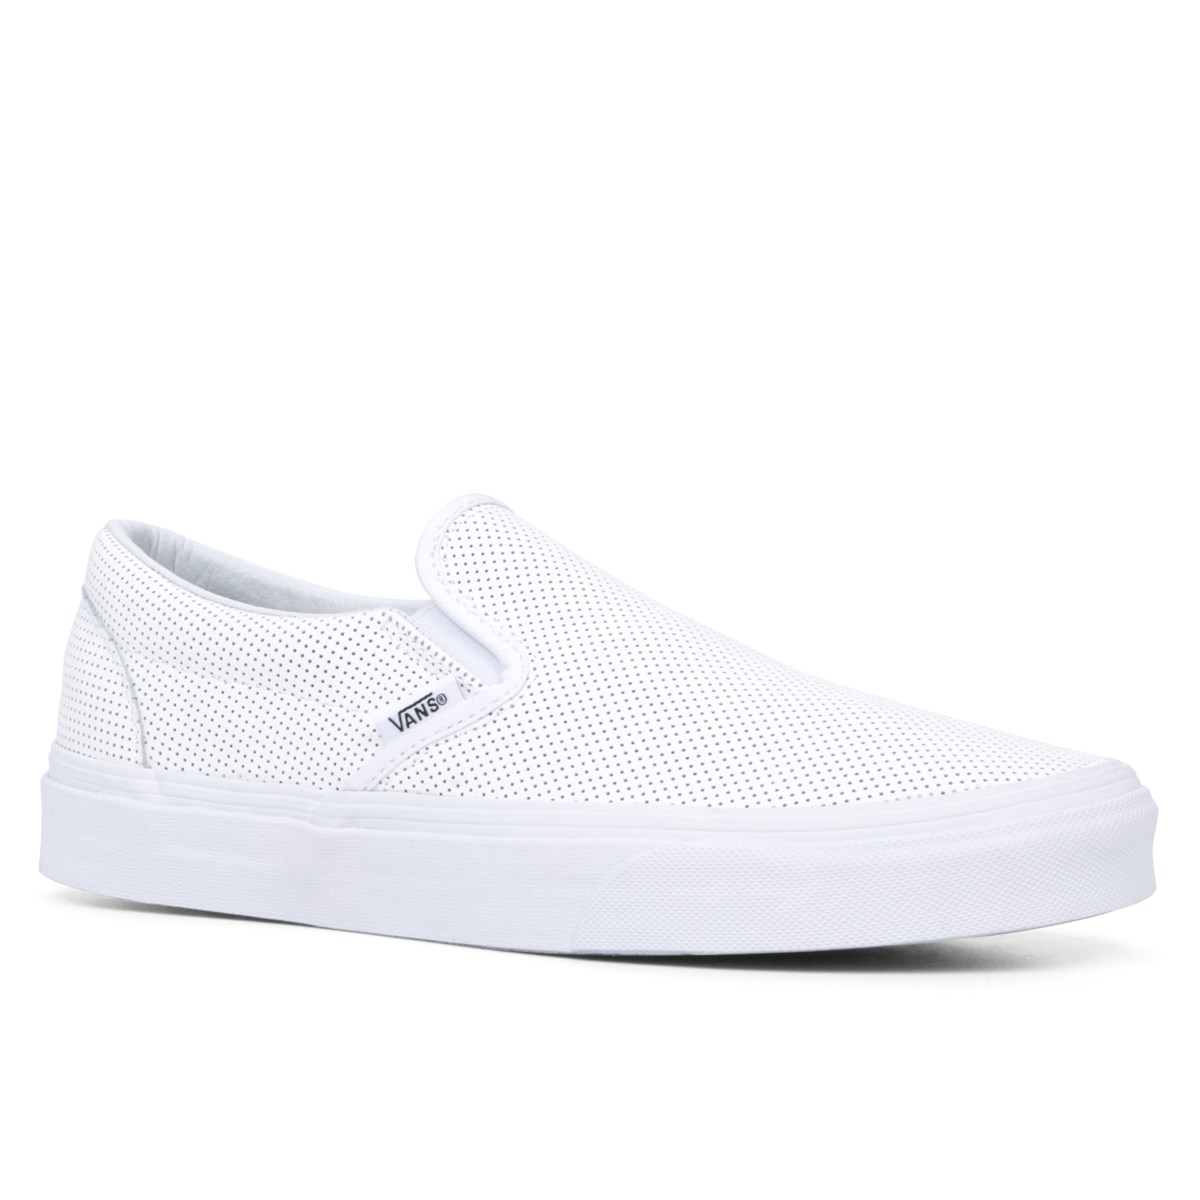 white slip on vans leather